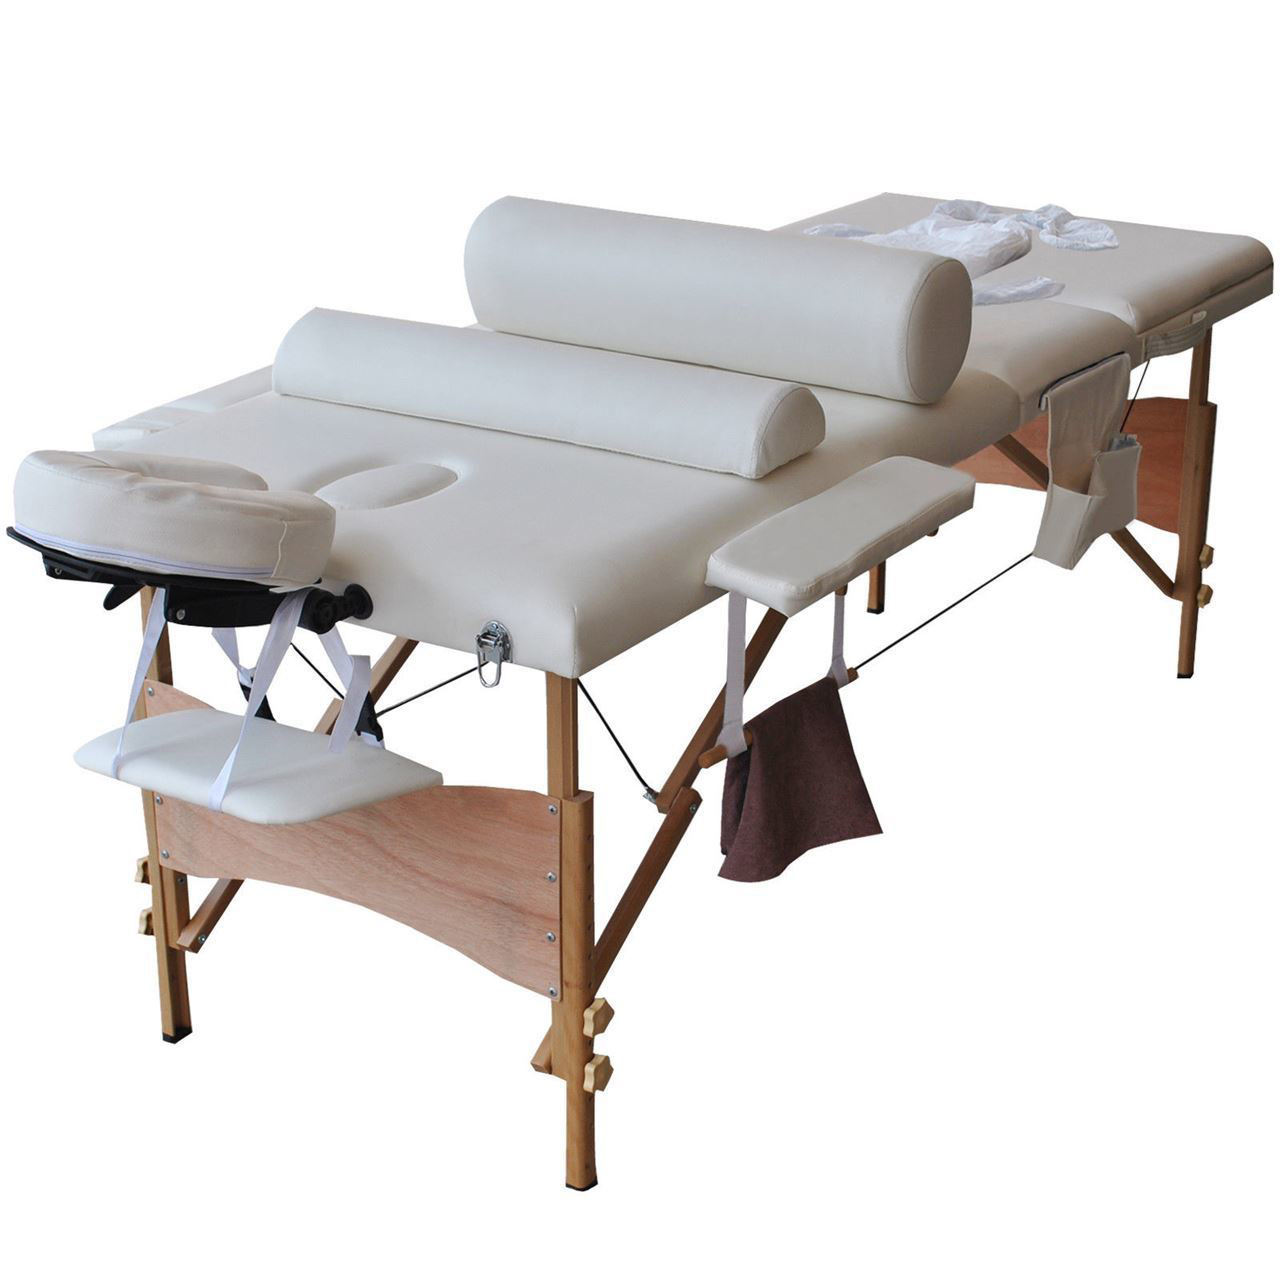 """Picture of Massage Table Portable Facial Bed with Sheet, Cradle, Cover and Bolsters 3 Fold 84""""L White"""